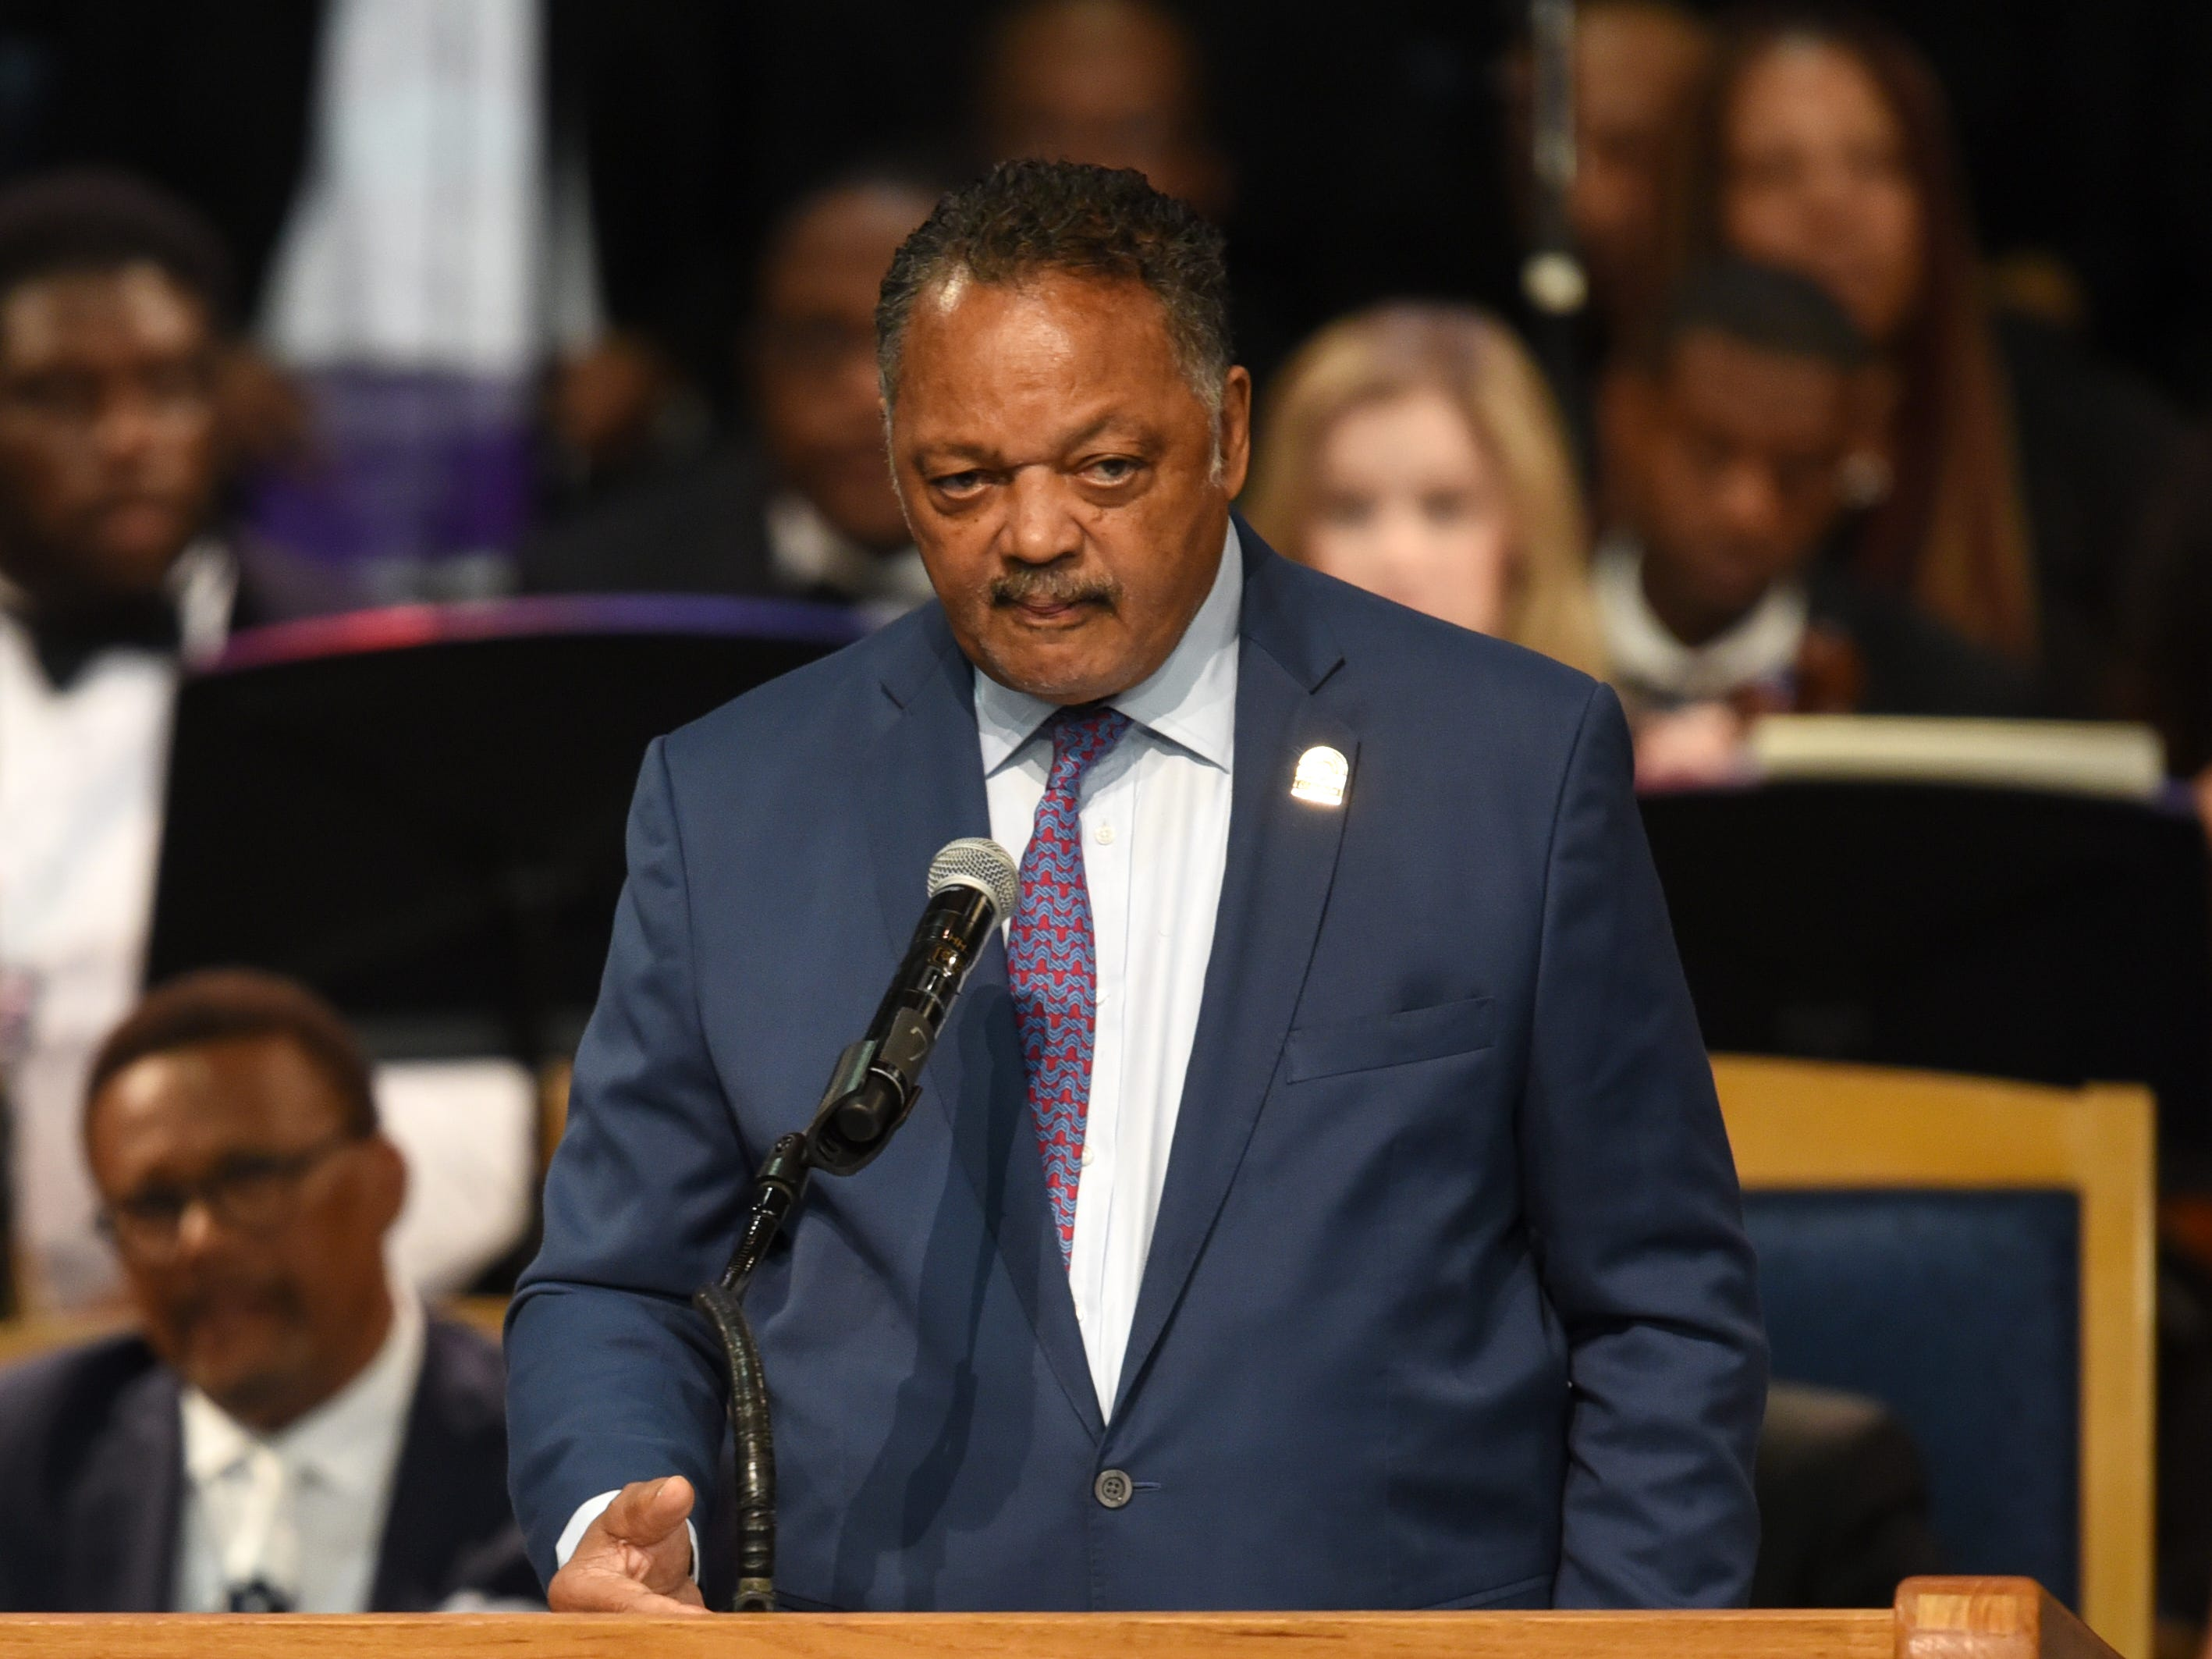 Rev. Jesse Jackson delivers his remarks during Aretha Franklin's memorial service.